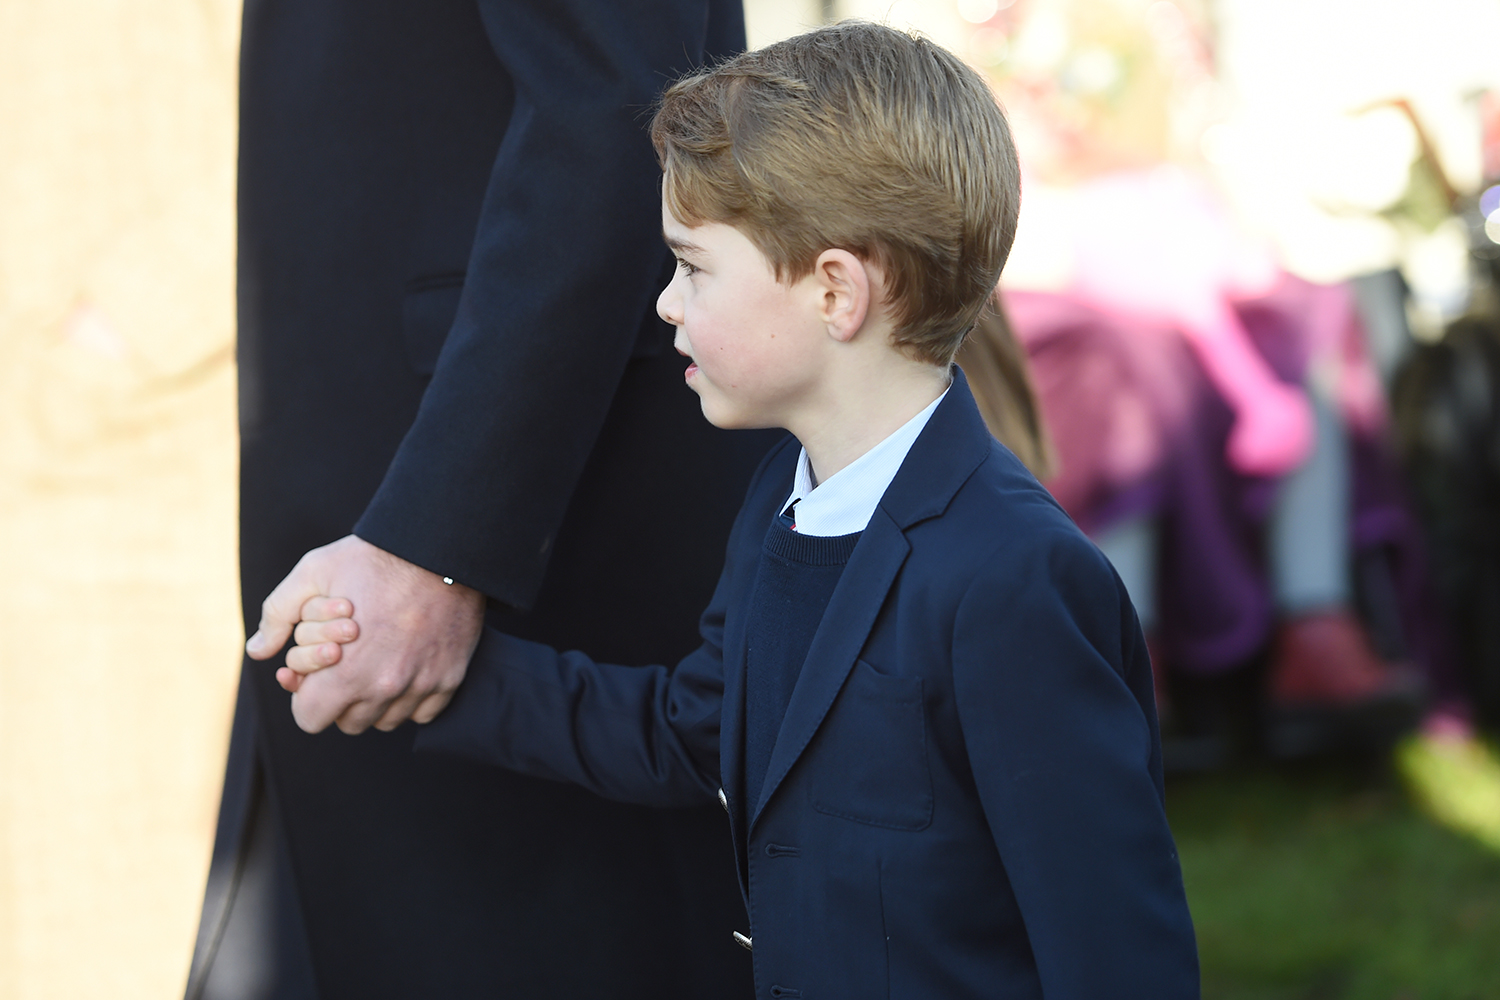 Prince George arriving to attend the Christmas Day morning church service at St Mary Magdalene Church in Sandringham, Norfolk. (Photo by Joe Giddens/PA Images via Getty Images)